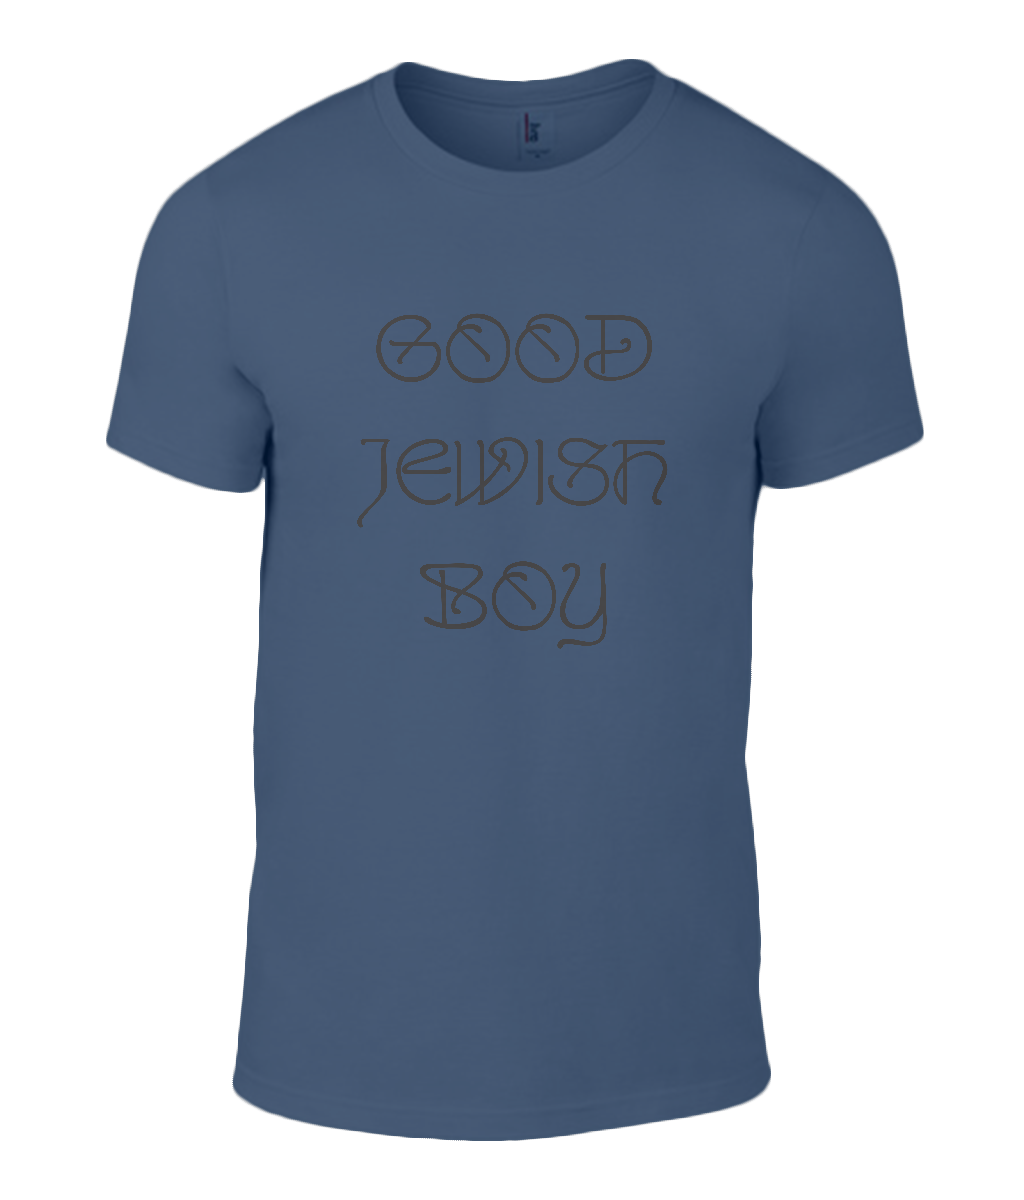 Round Neck T-Shirt - Good Jewish Boy - Lokshen Pudding UK - Blue